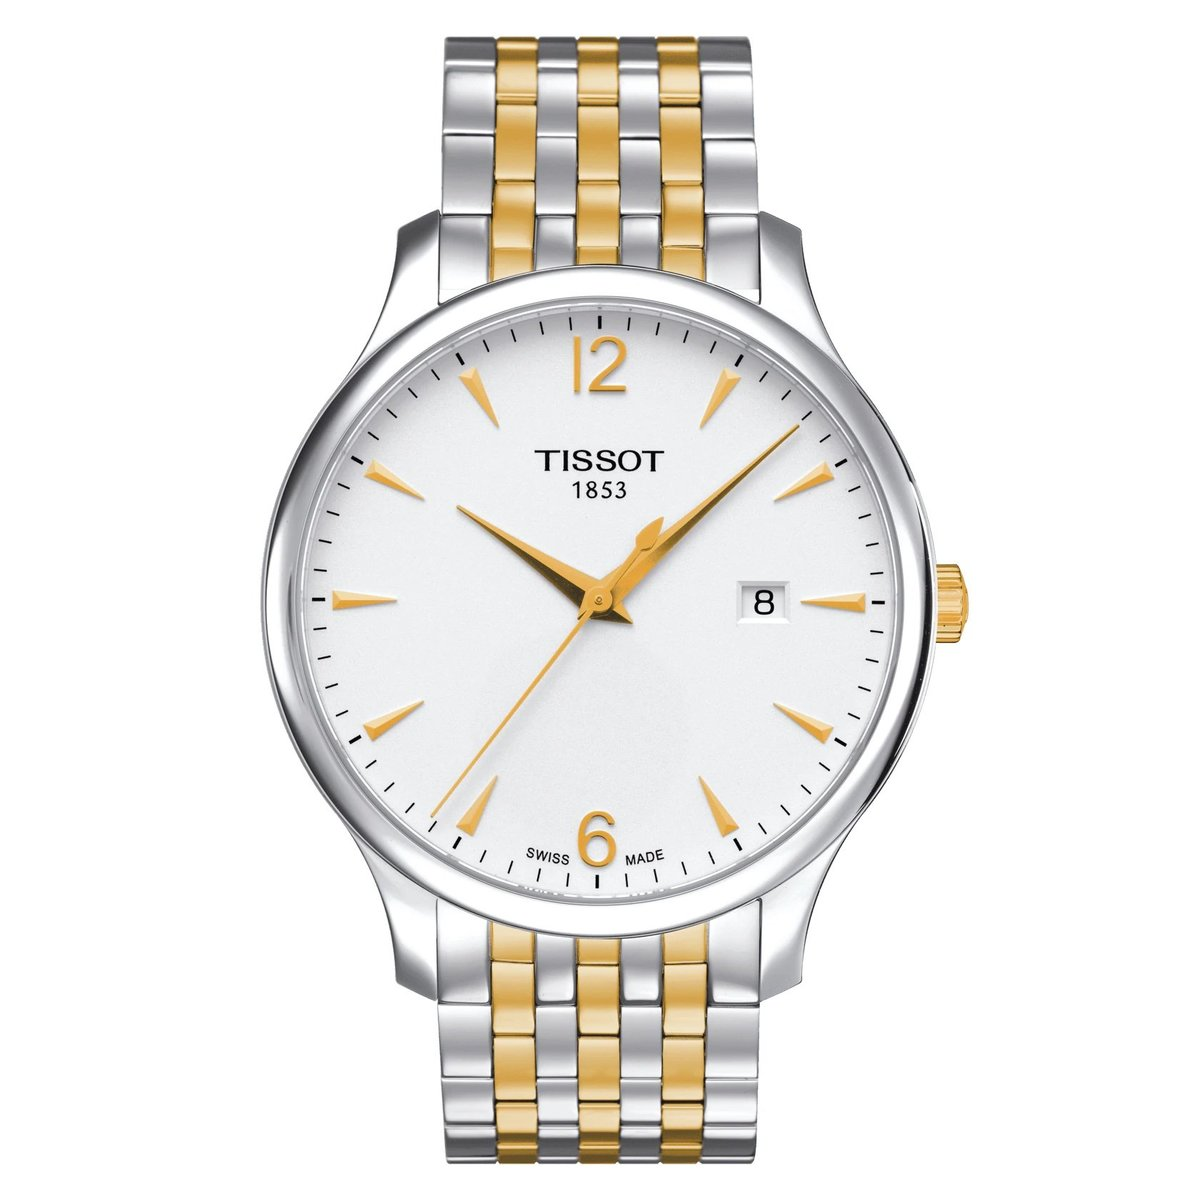 TISSOT T-Class Tradition Men's Glod Steel Watch - Sliver (parallel goods)